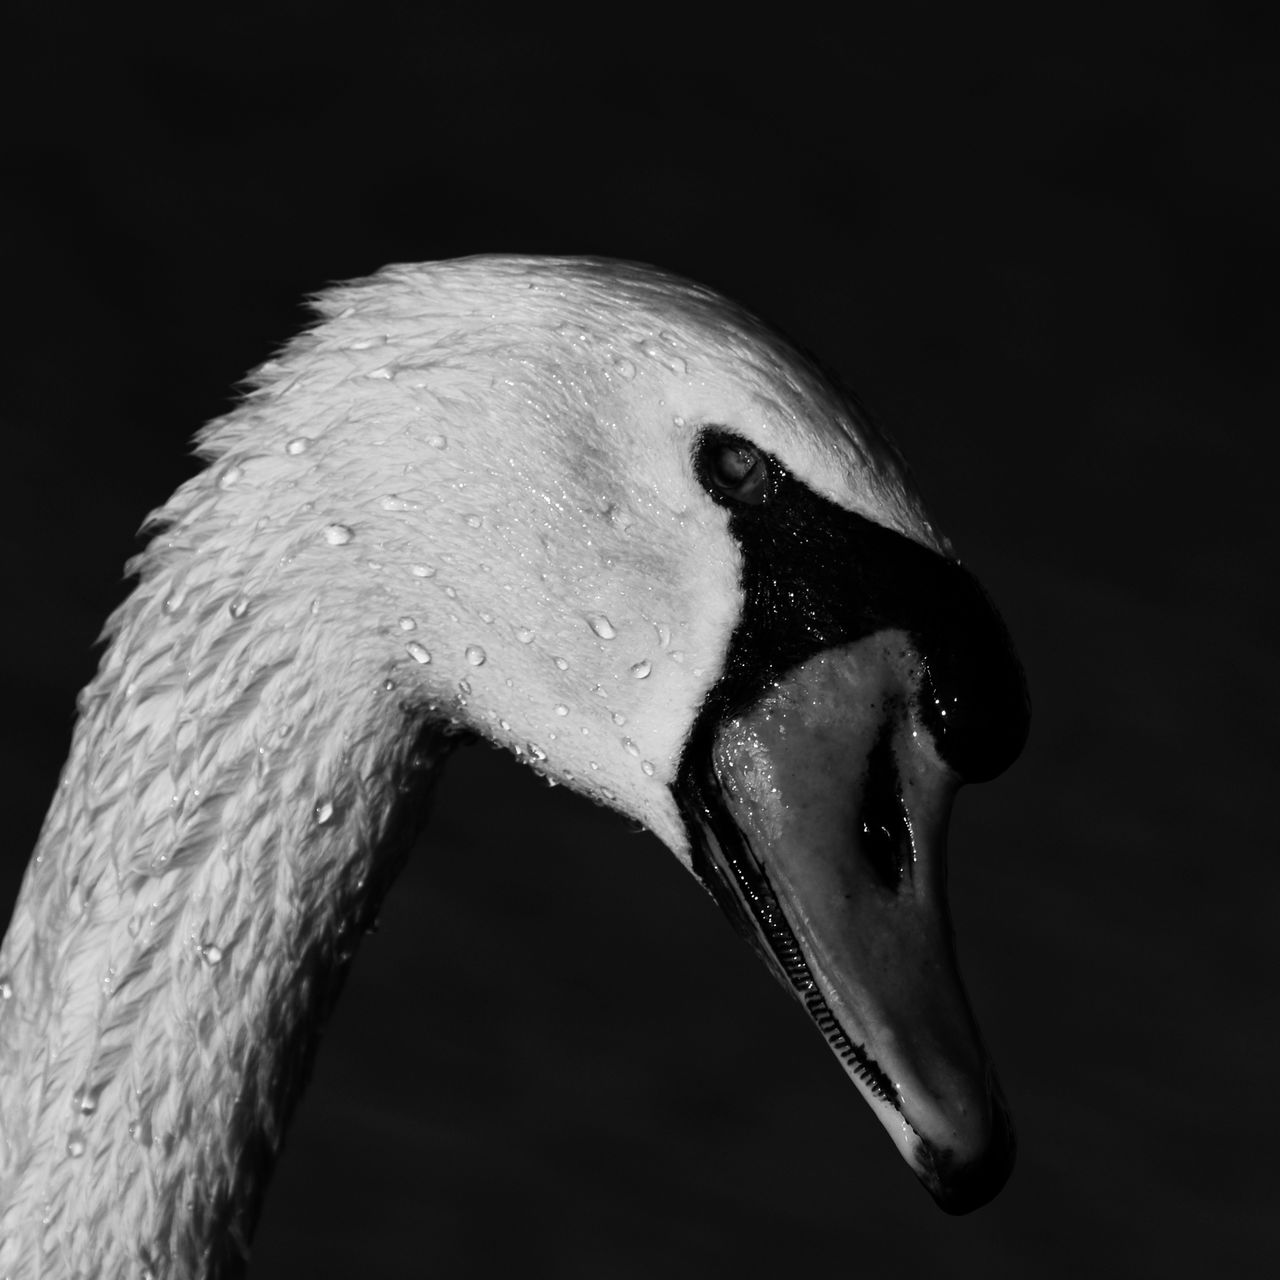 Black Background One Animal Animal Body Part Close-up Portrait Animal Themes One Person People Adults Only Adult Day Black And White Collection  Black And White Collection  Texas Photographer Black And White Collection! Animals In The Wild